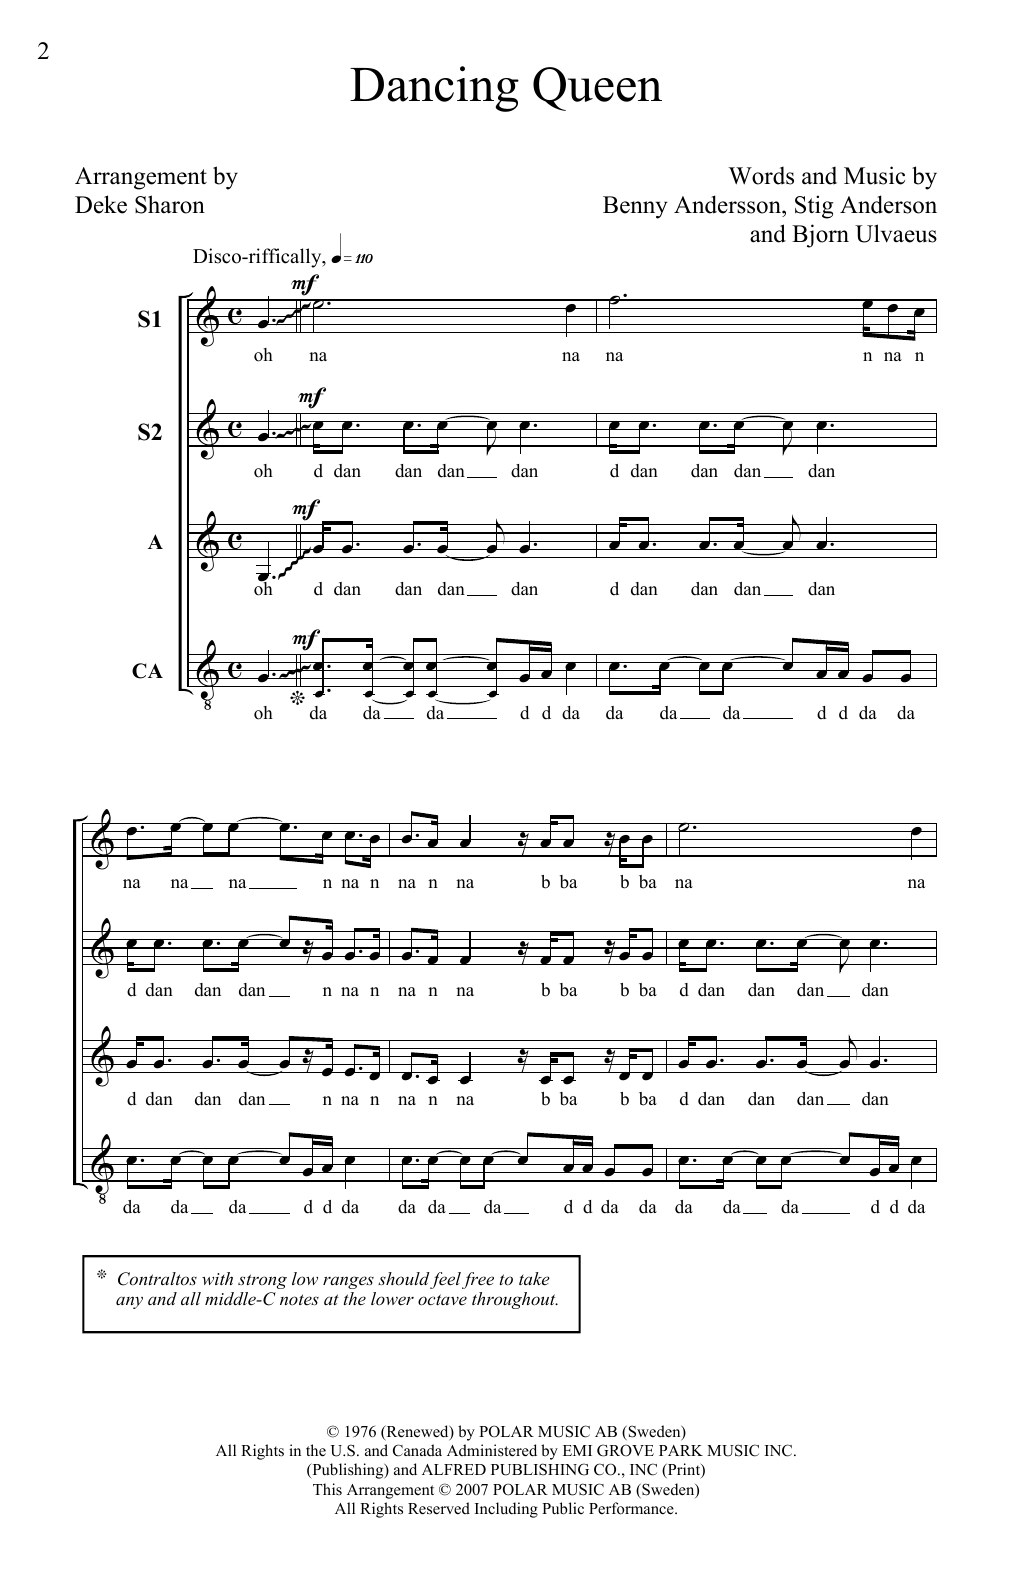 Download ABBA 'Dancing Queen (arr. Deke Sharon)' Digital Sheet Music Notes & Chords and start playing in minutes